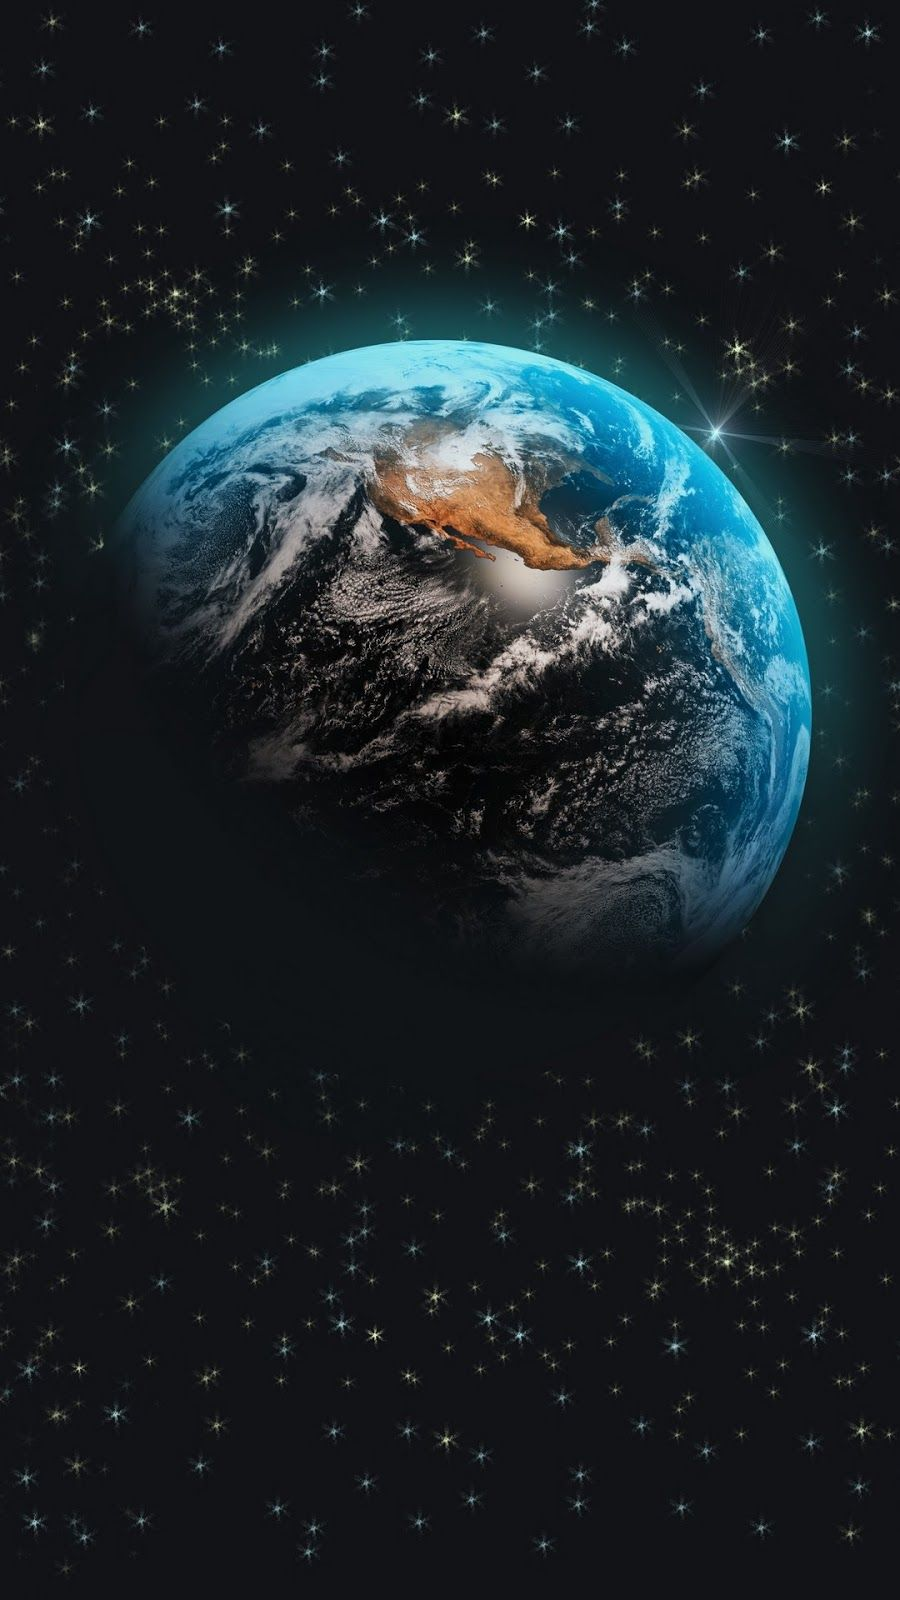 Earth Wallpaper Iphone Android Wallpaper Earth Iphone Wallpaper Earth Hd Galaxy Wallpaper Iphone earth wallpaper hd 1080p download